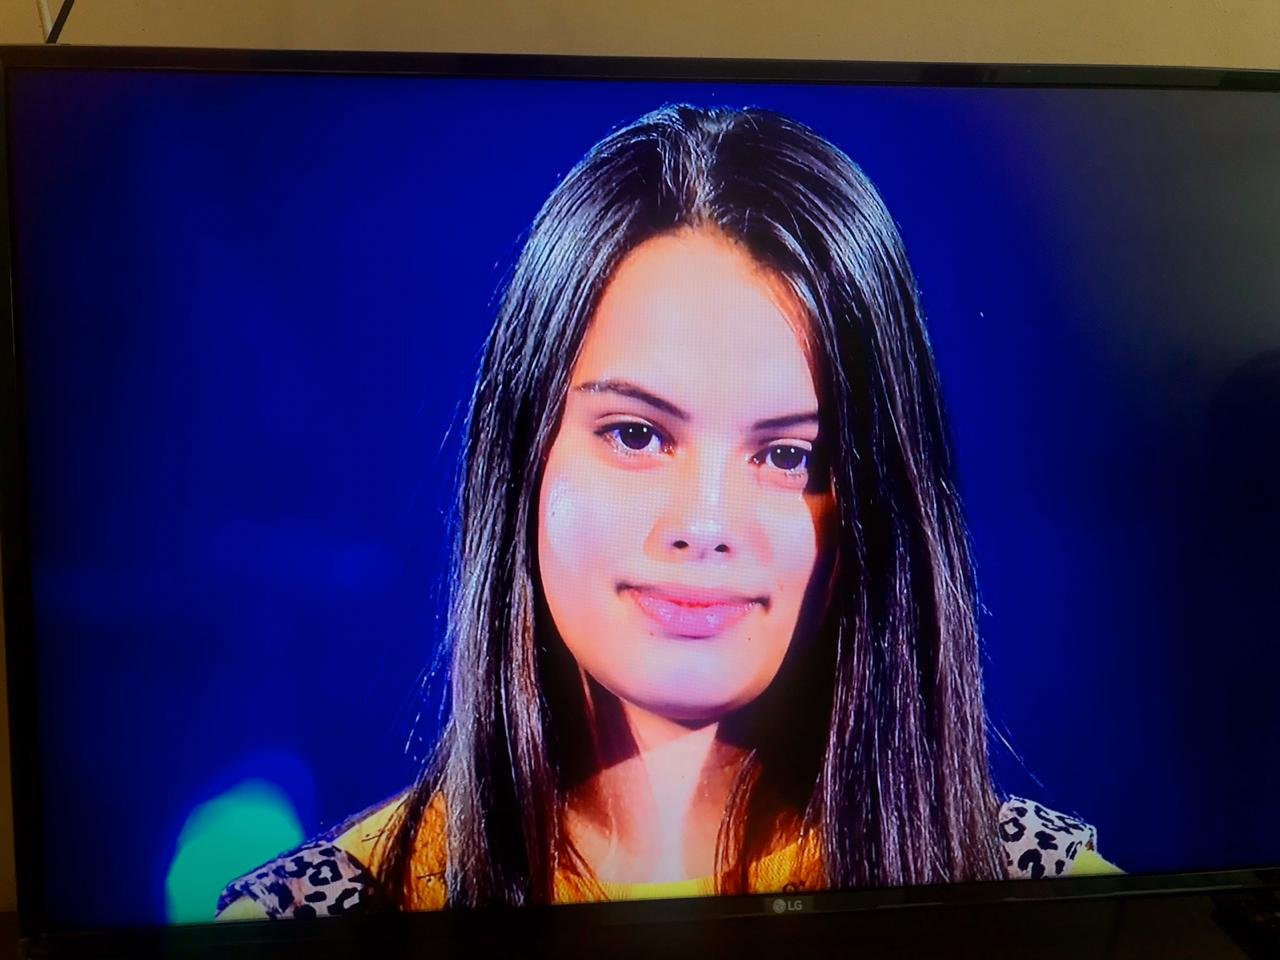 Piauiense Natielly Rocha vence batalha e se classifica para a próxima fase do The Voice Kids